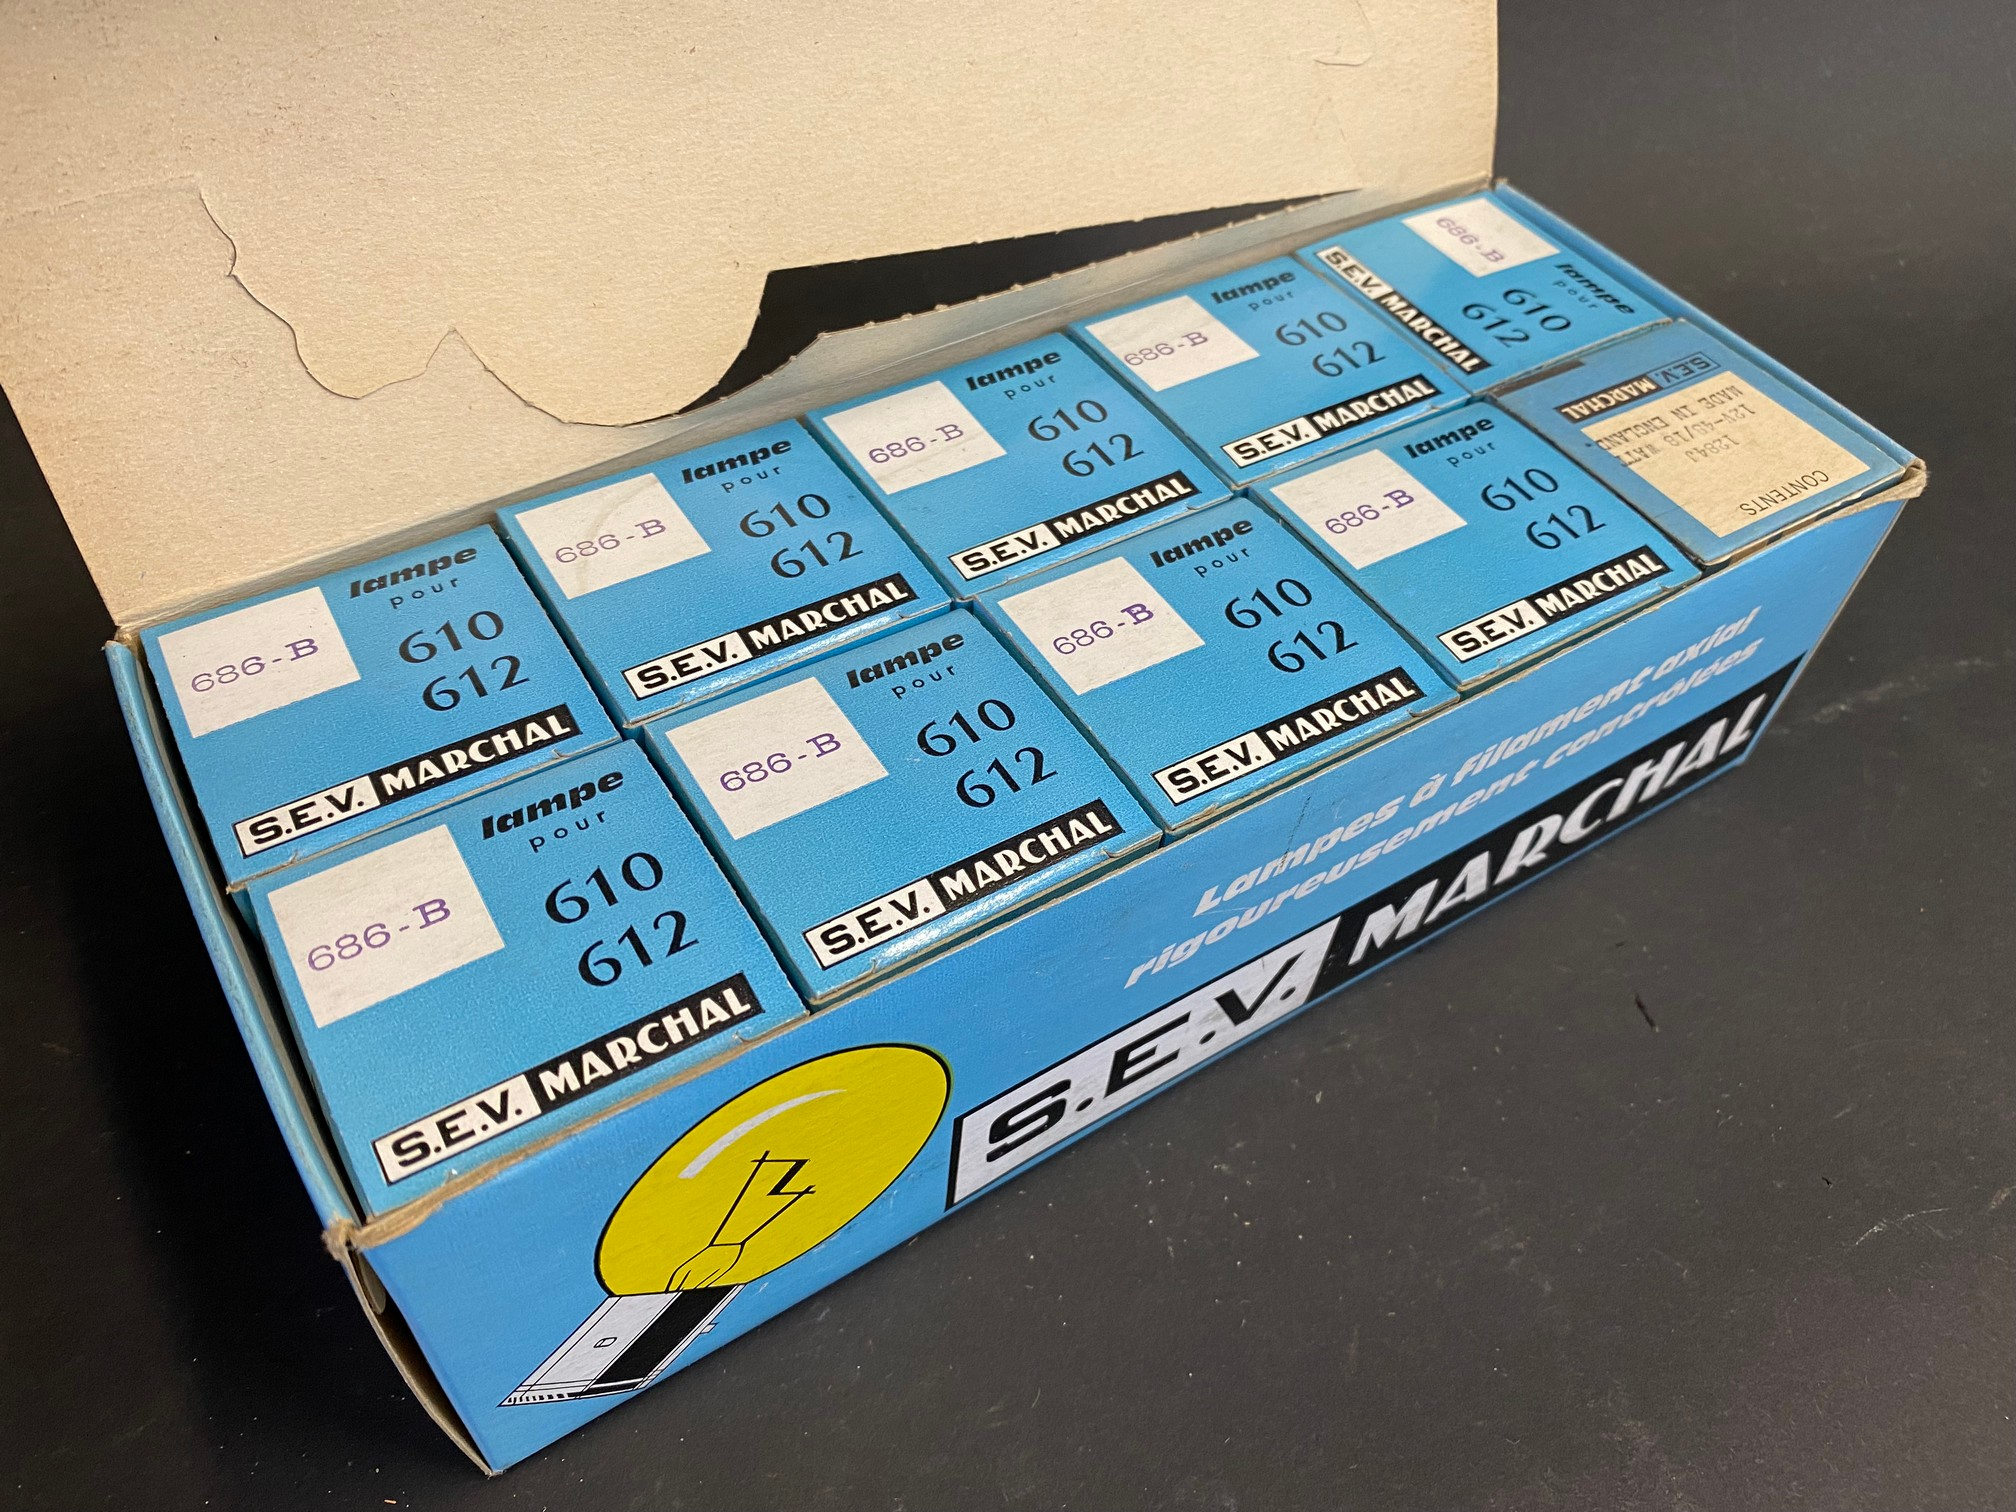 A complete boxed set of S.E.V. Marchal car bulbs, housed in a great advertising display box. - Image 2 of 3